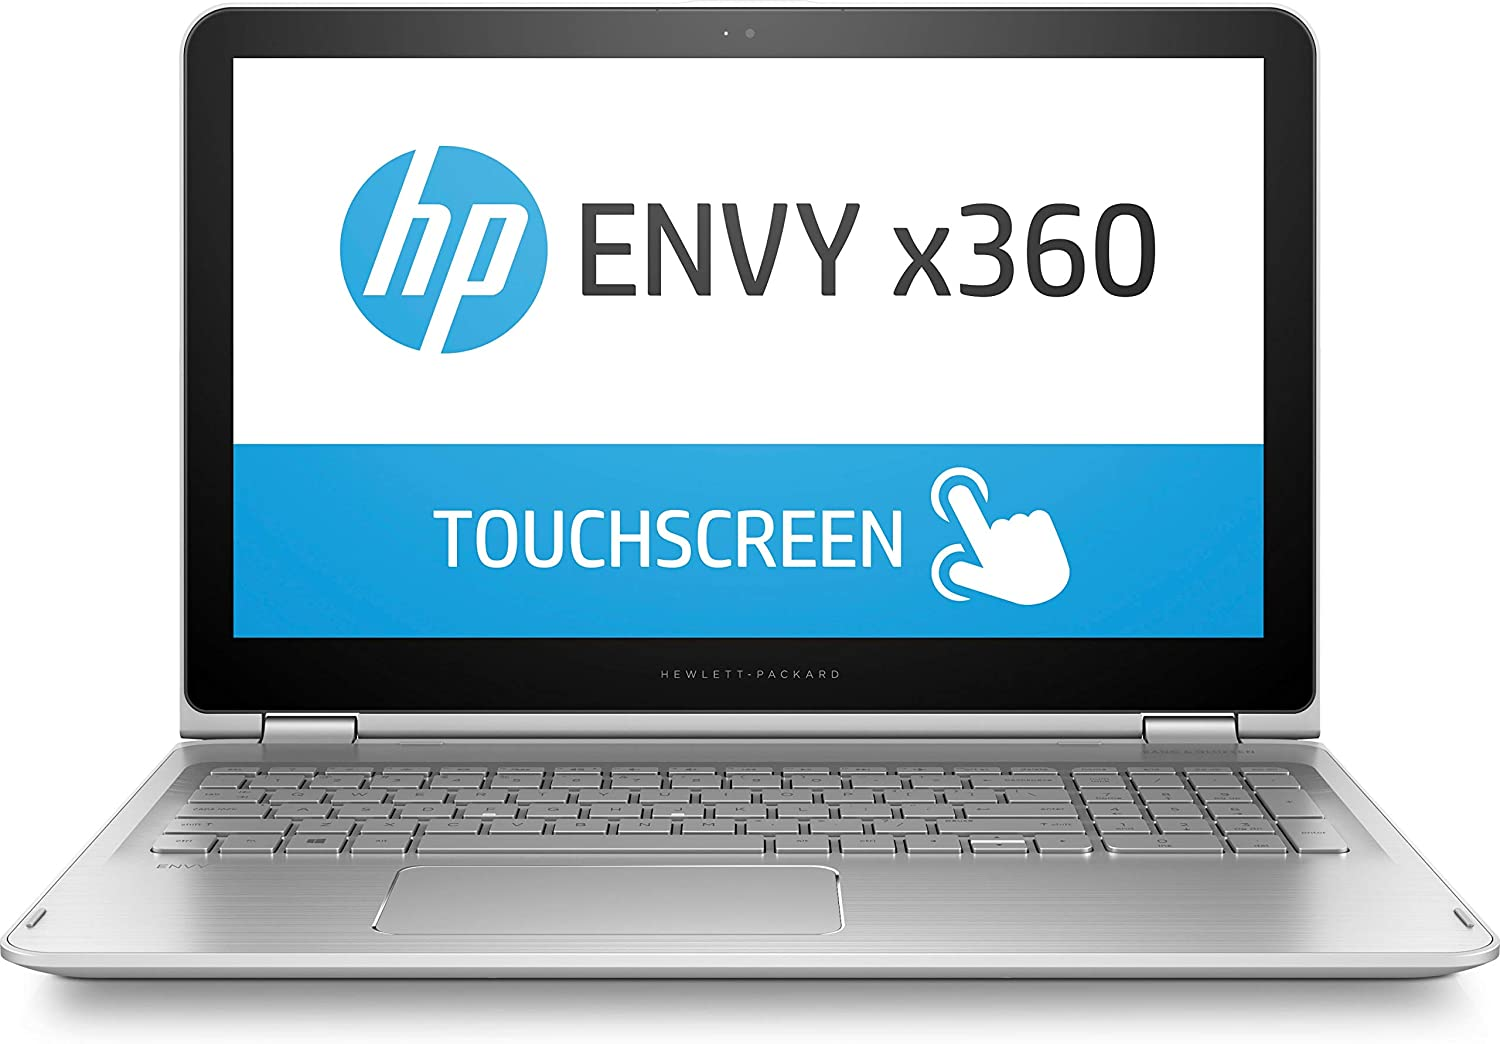 HP Envy Touch 13t x360 Convertible Ultrabook 7th Gen Intel i7 up to 3.5 GHz 16GB 1TB SSD 13.3in QHD+ B&O AUDIO WebCam WiFi (Renewed)